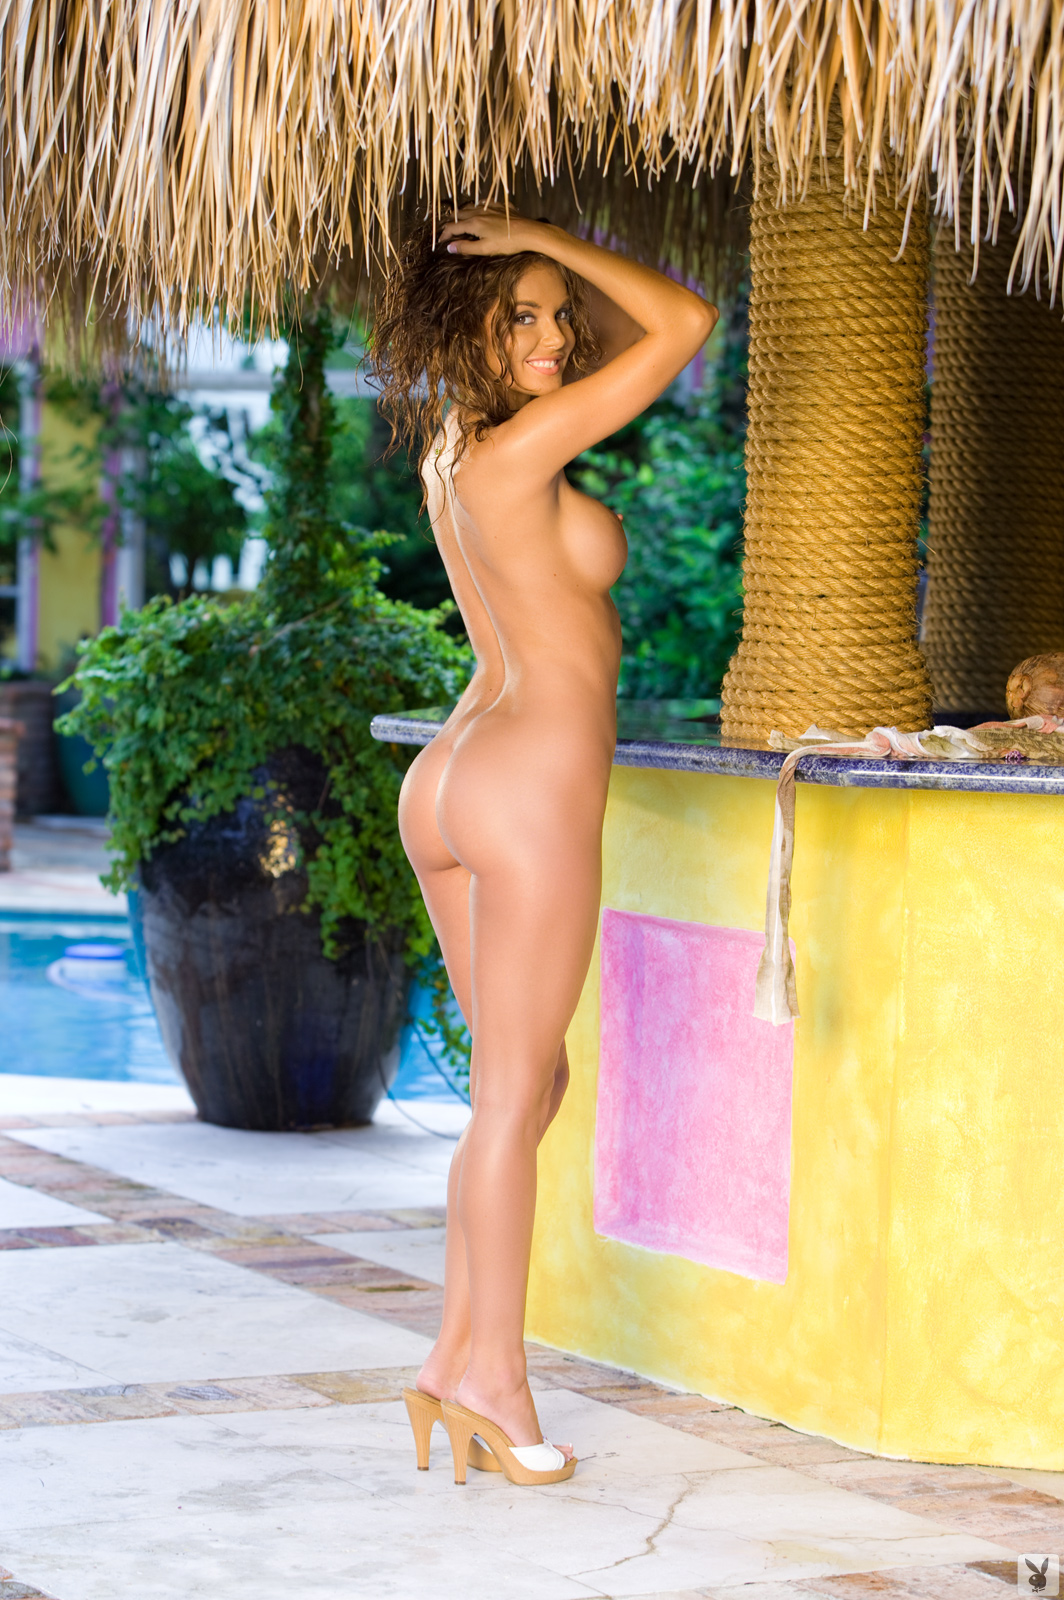 hillary-fisher-cybergirl-playboy-11